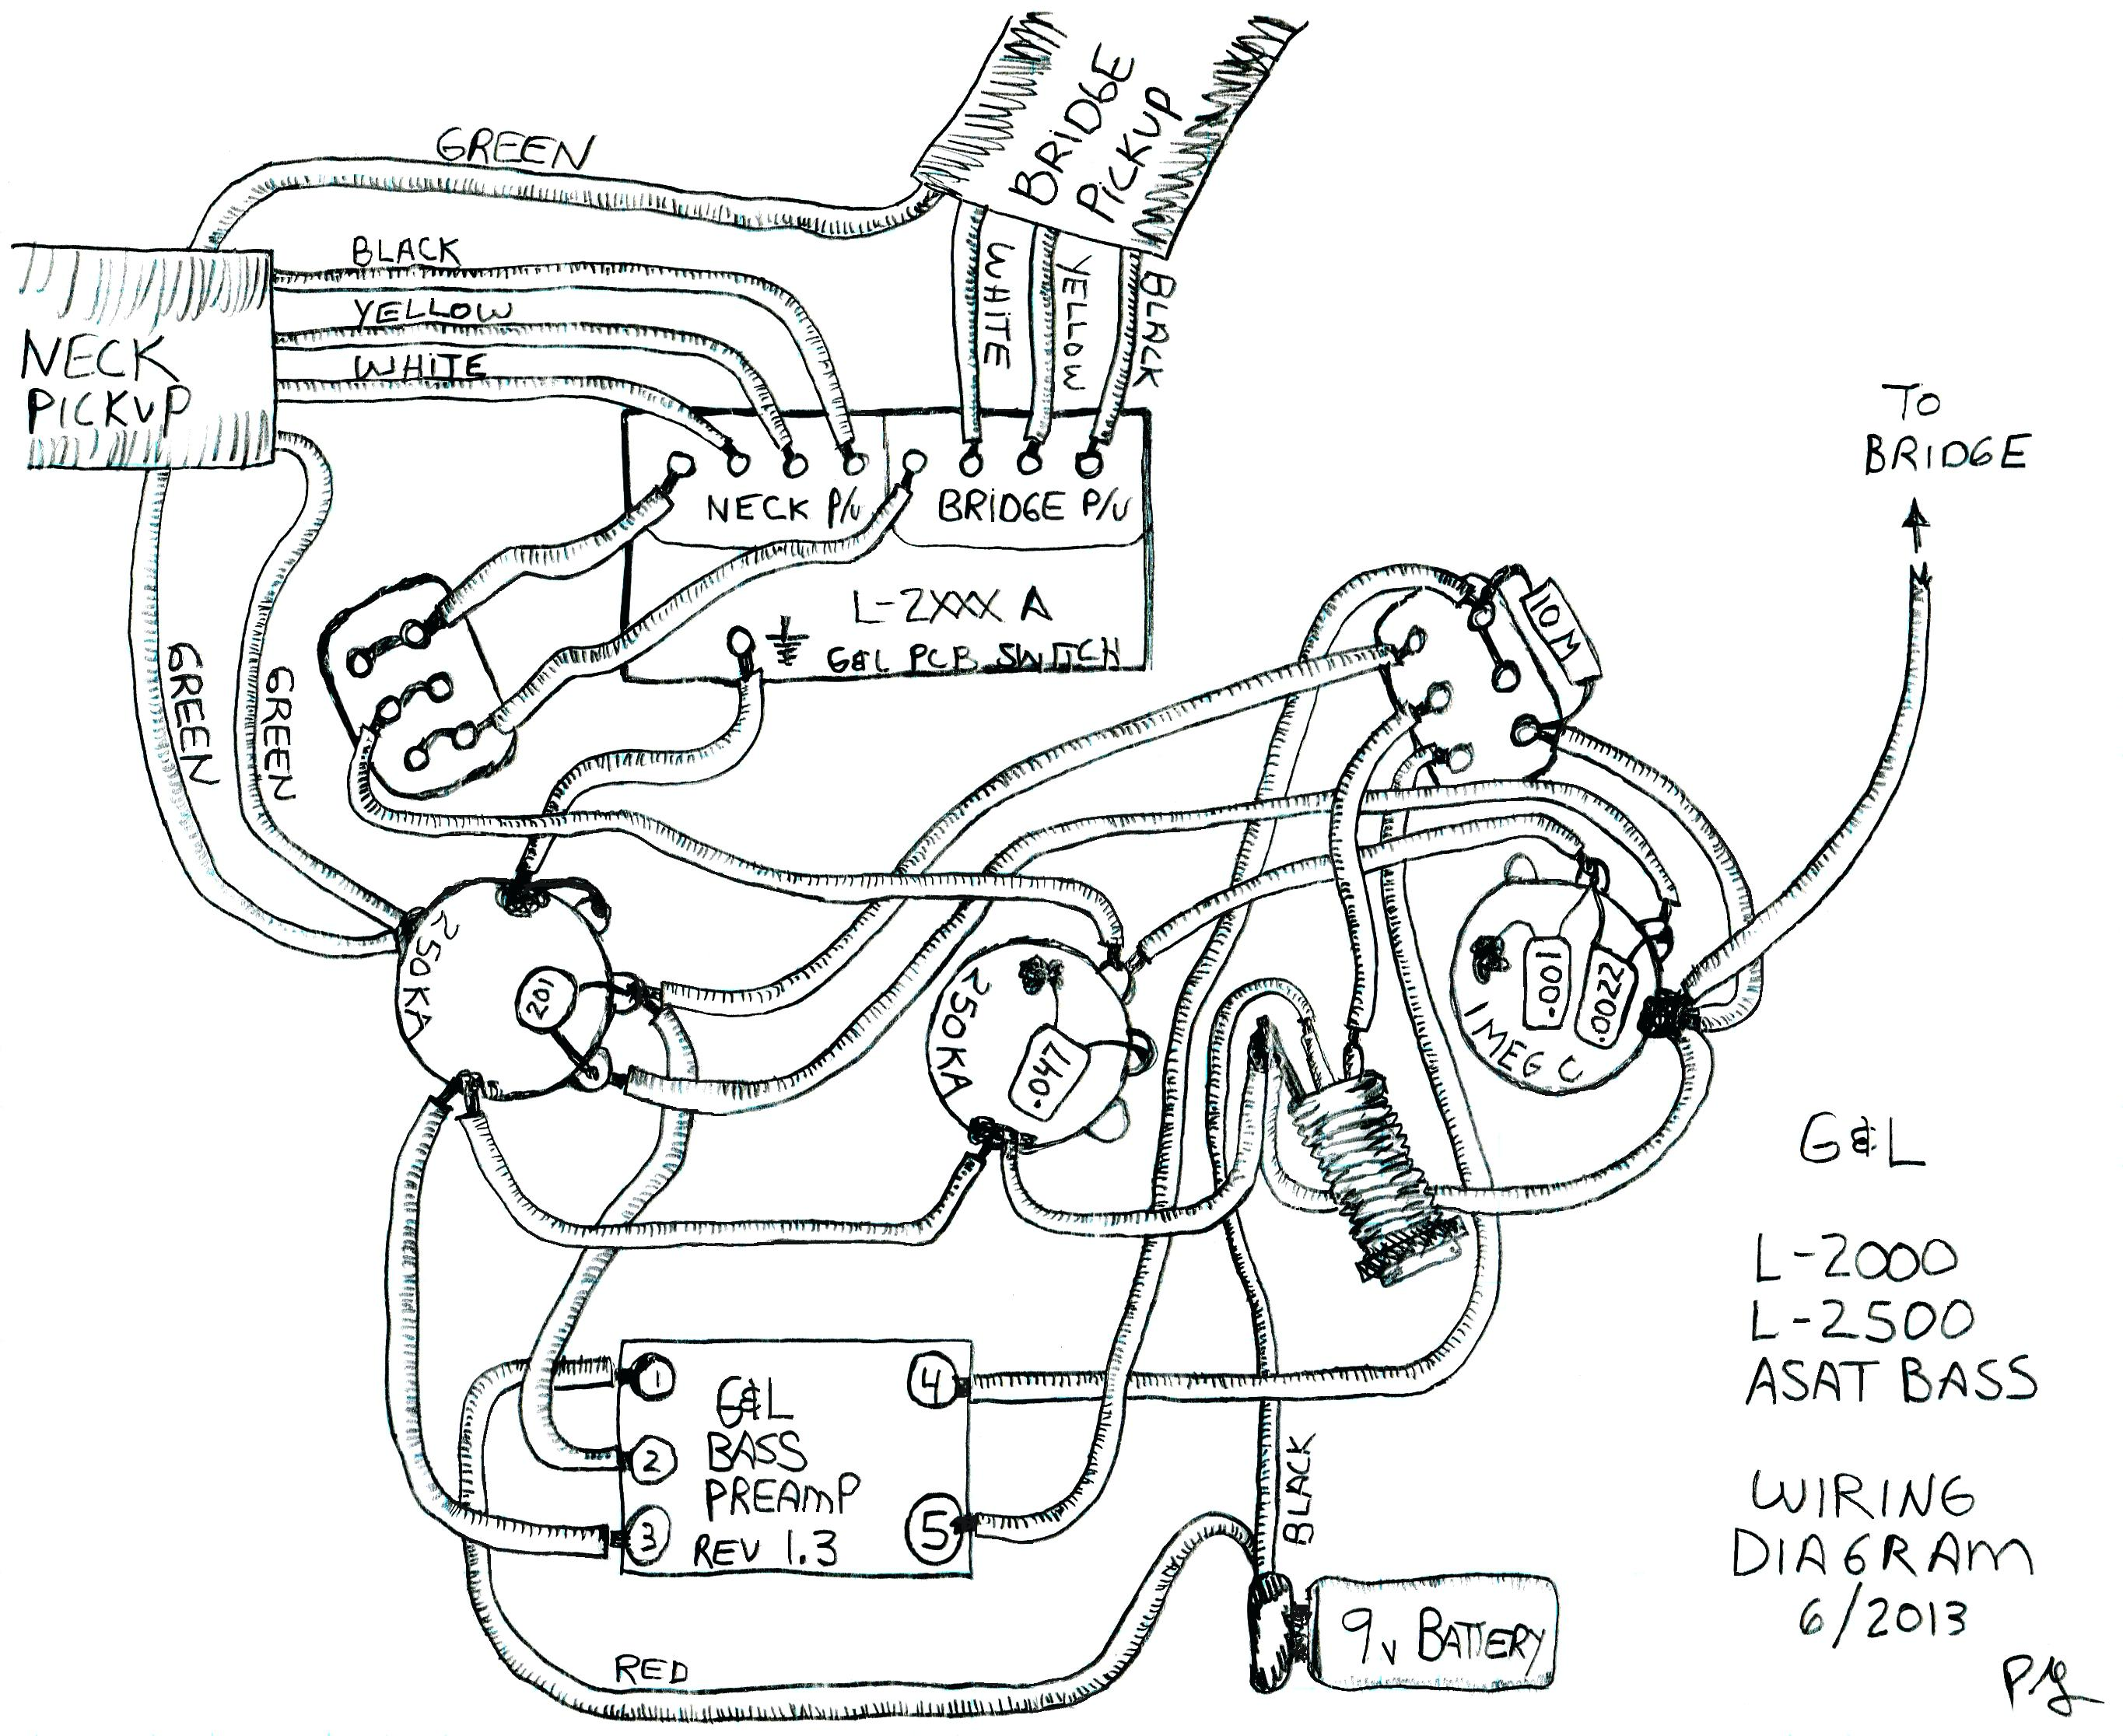 Les Paul Drawing on Wiring Diagram On Black Epiphone Sg Special